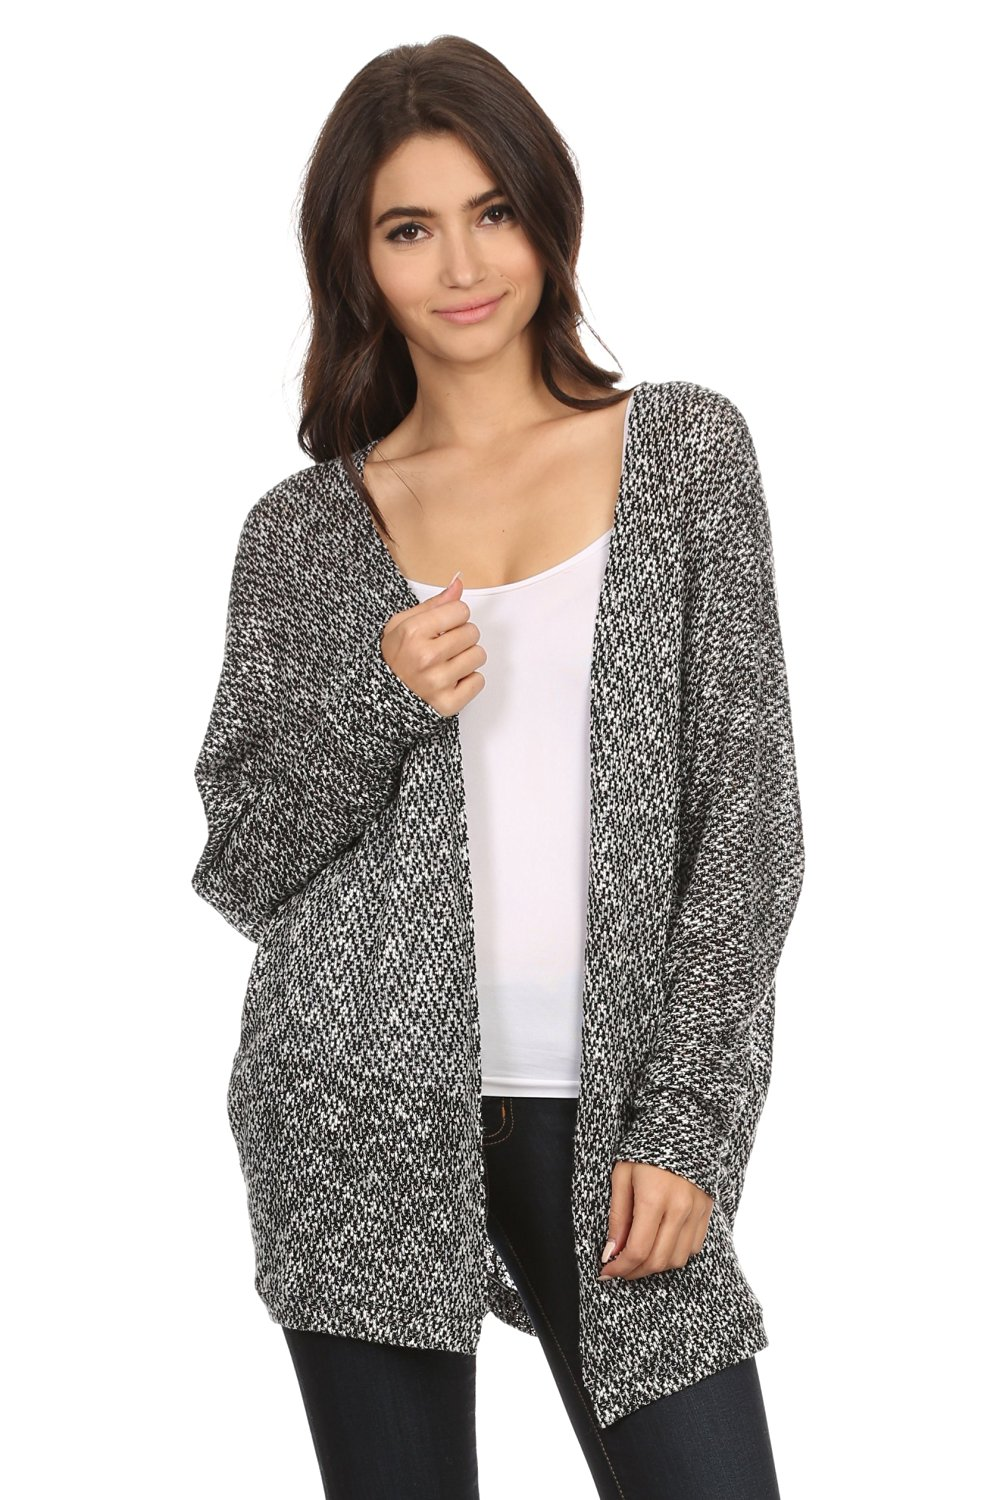 A D Womens Sweater Knit Cardigan W Open Front At Amazon Womens